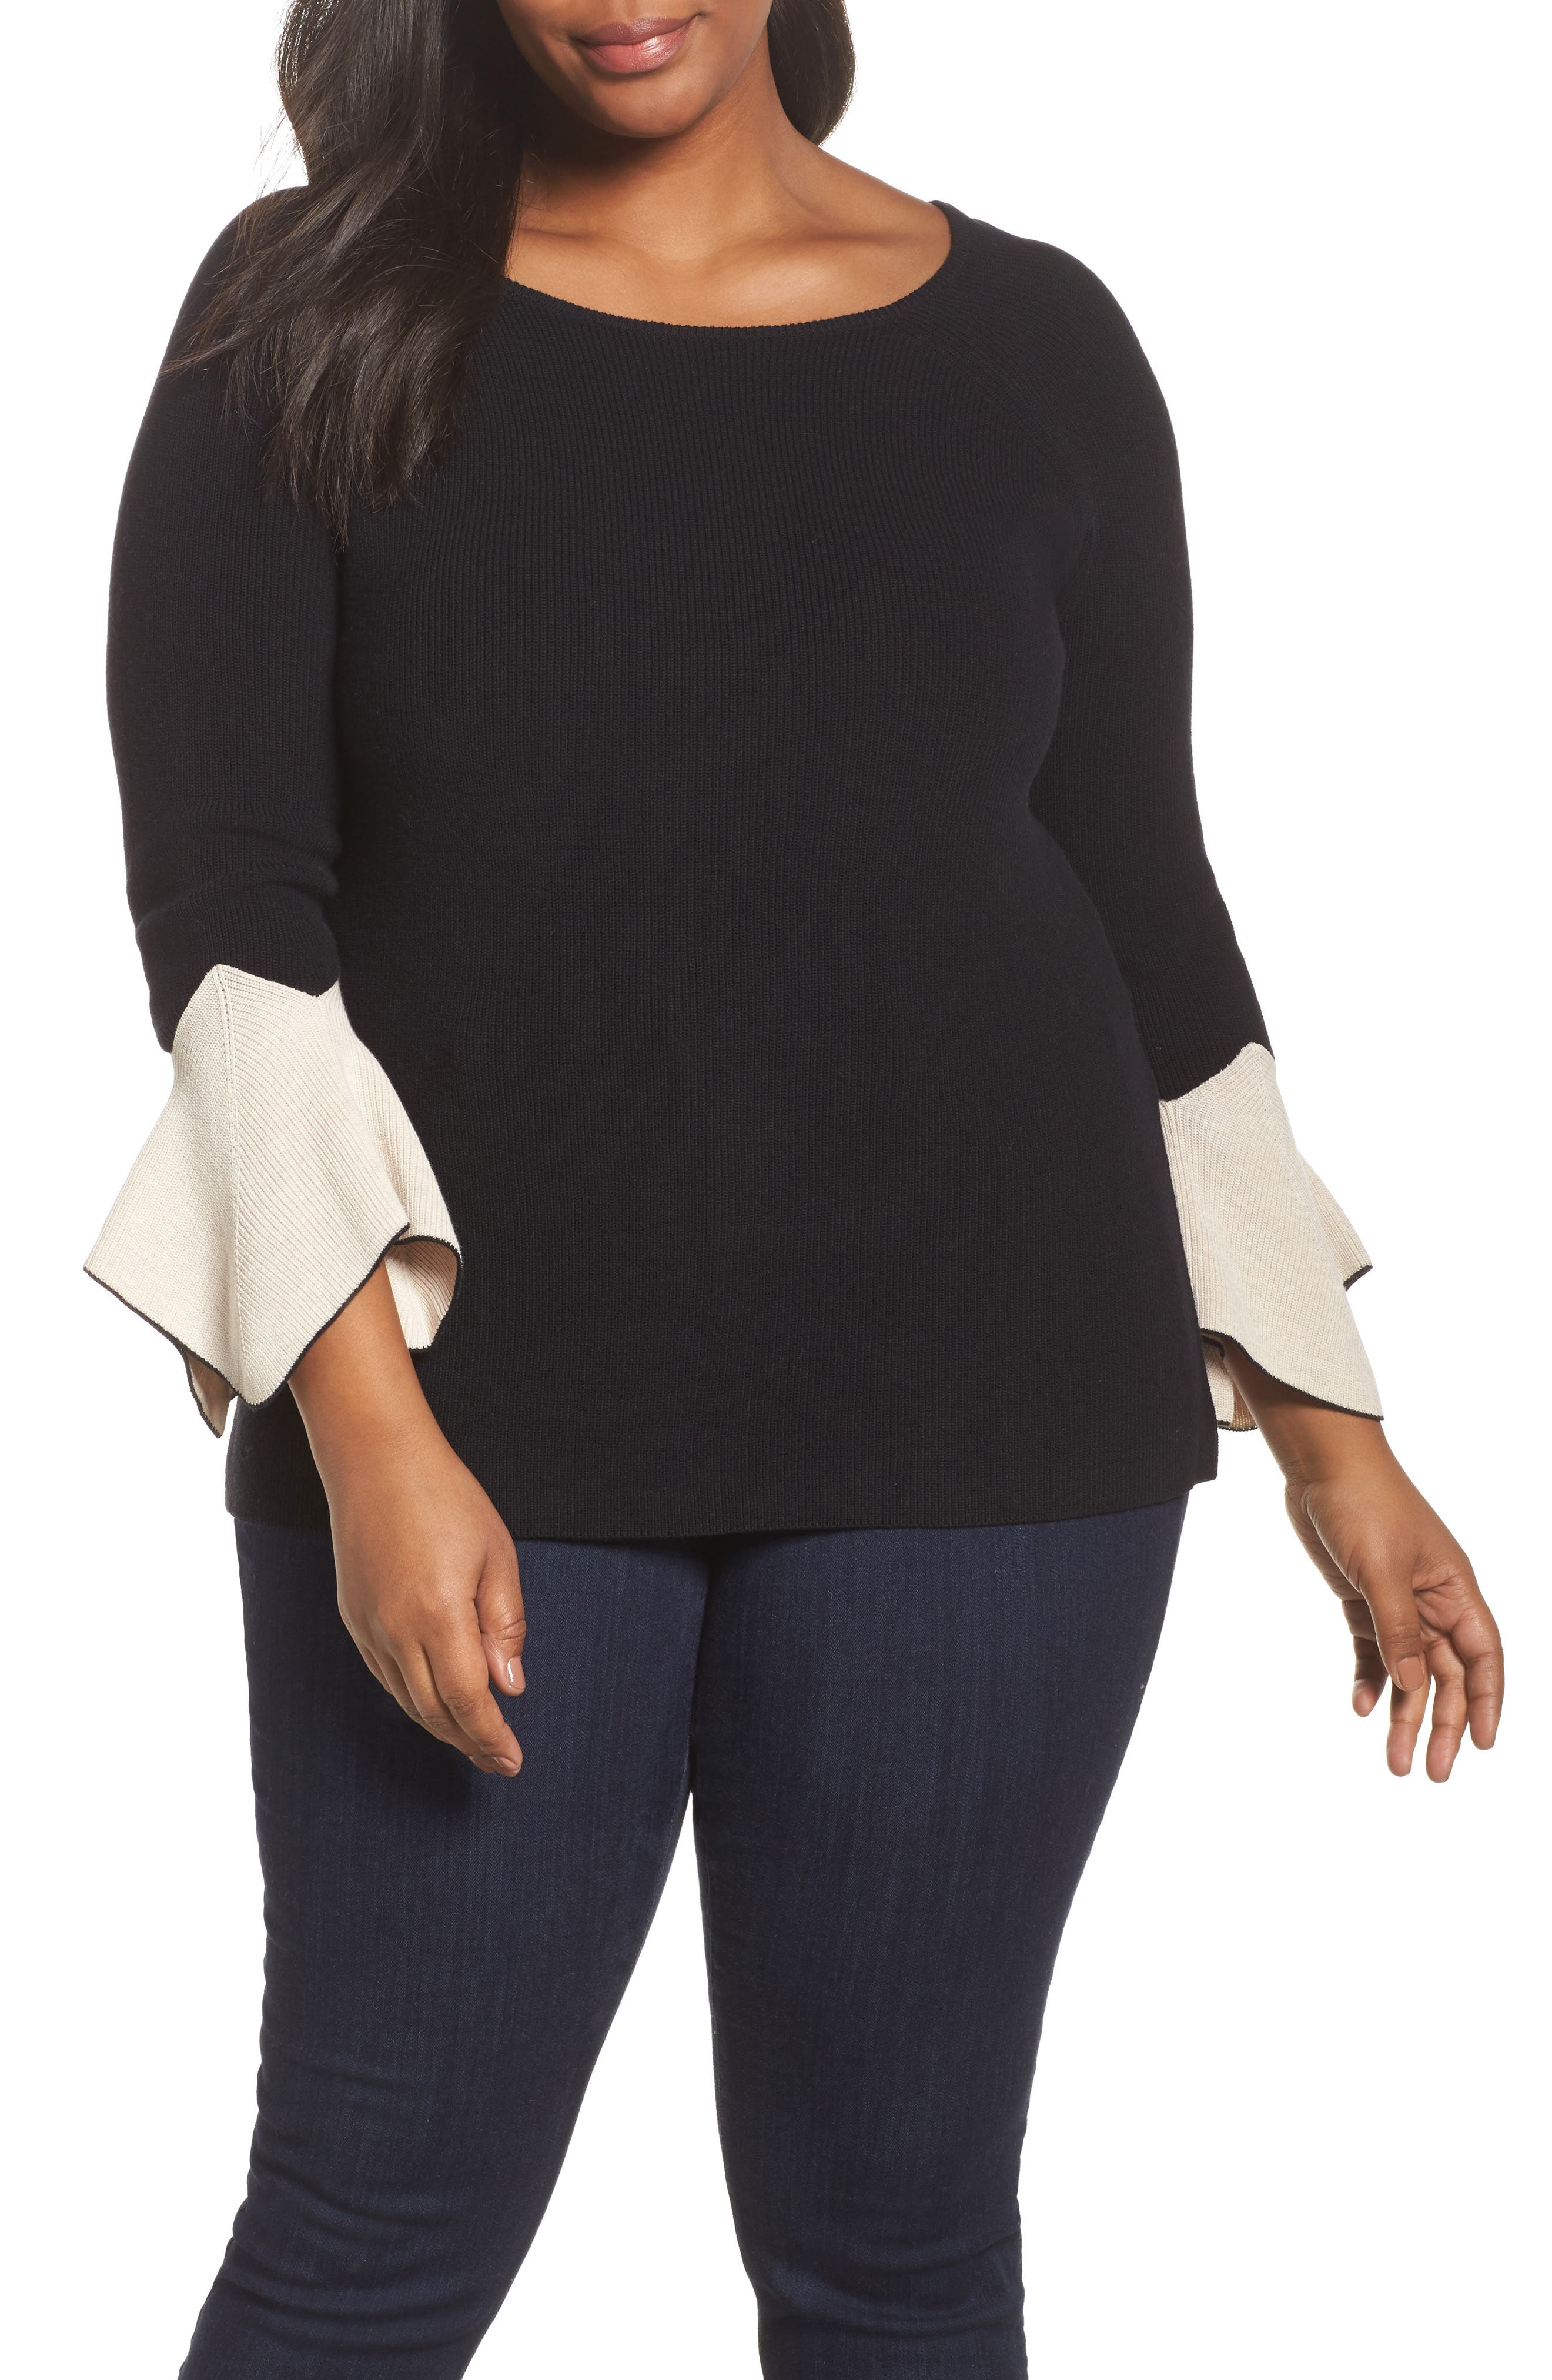 Alternate Image 1 Selected - NIC+ZOE Crystal Cuff Top (Plus Size)